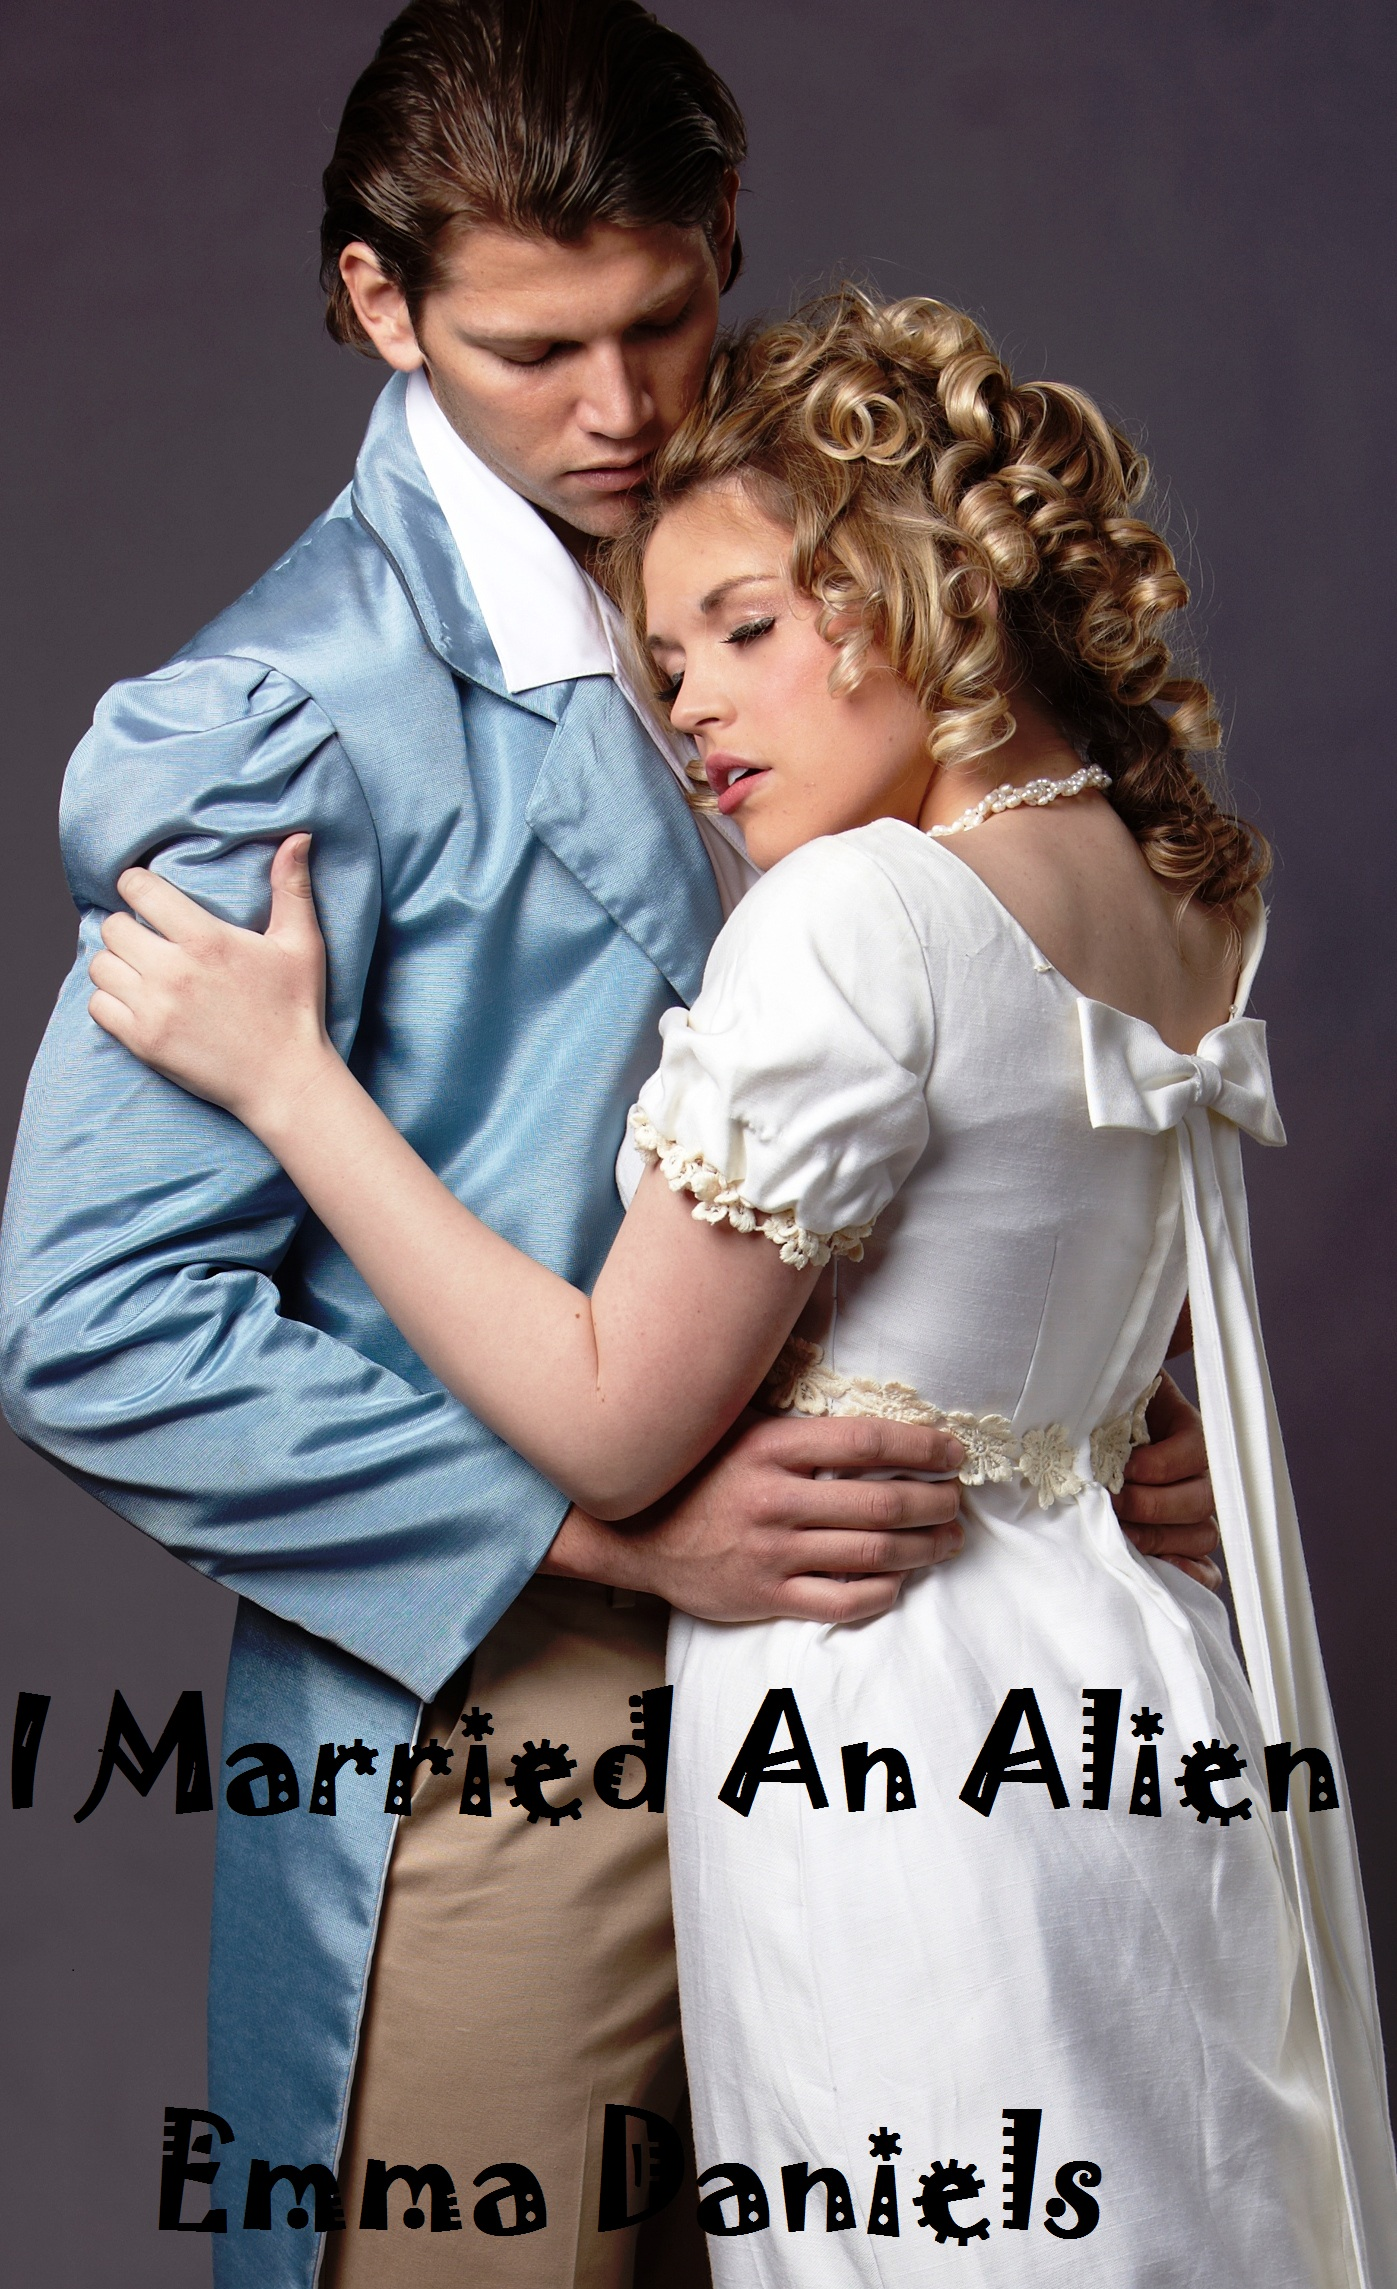 I Married An Alien The Treaty, Book 1 (sst-ccv)